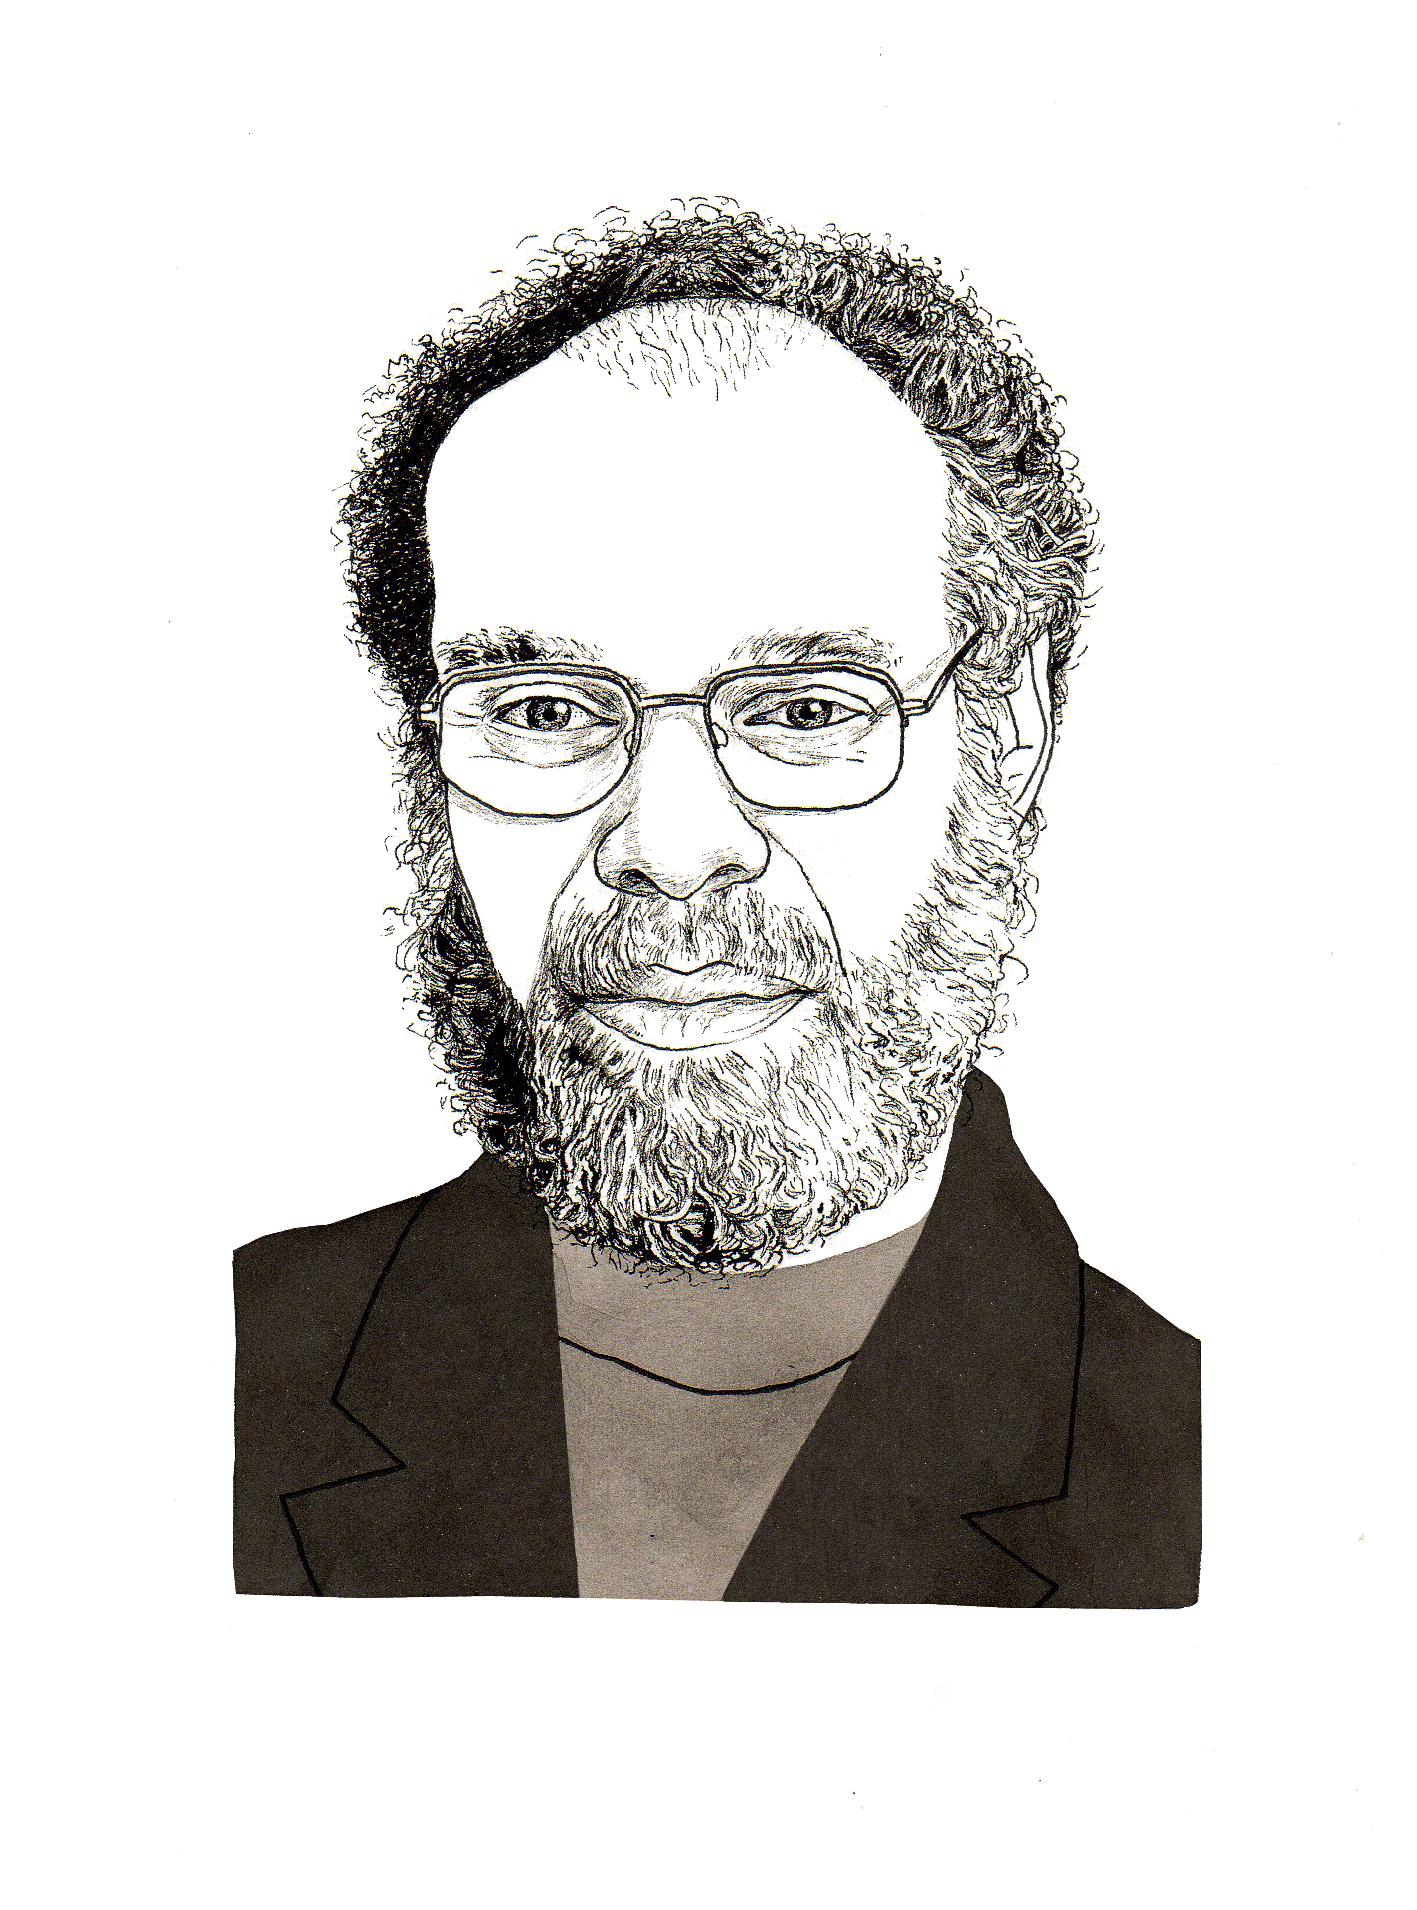 Rev. William Epps (Illustration by Adam Cruft)